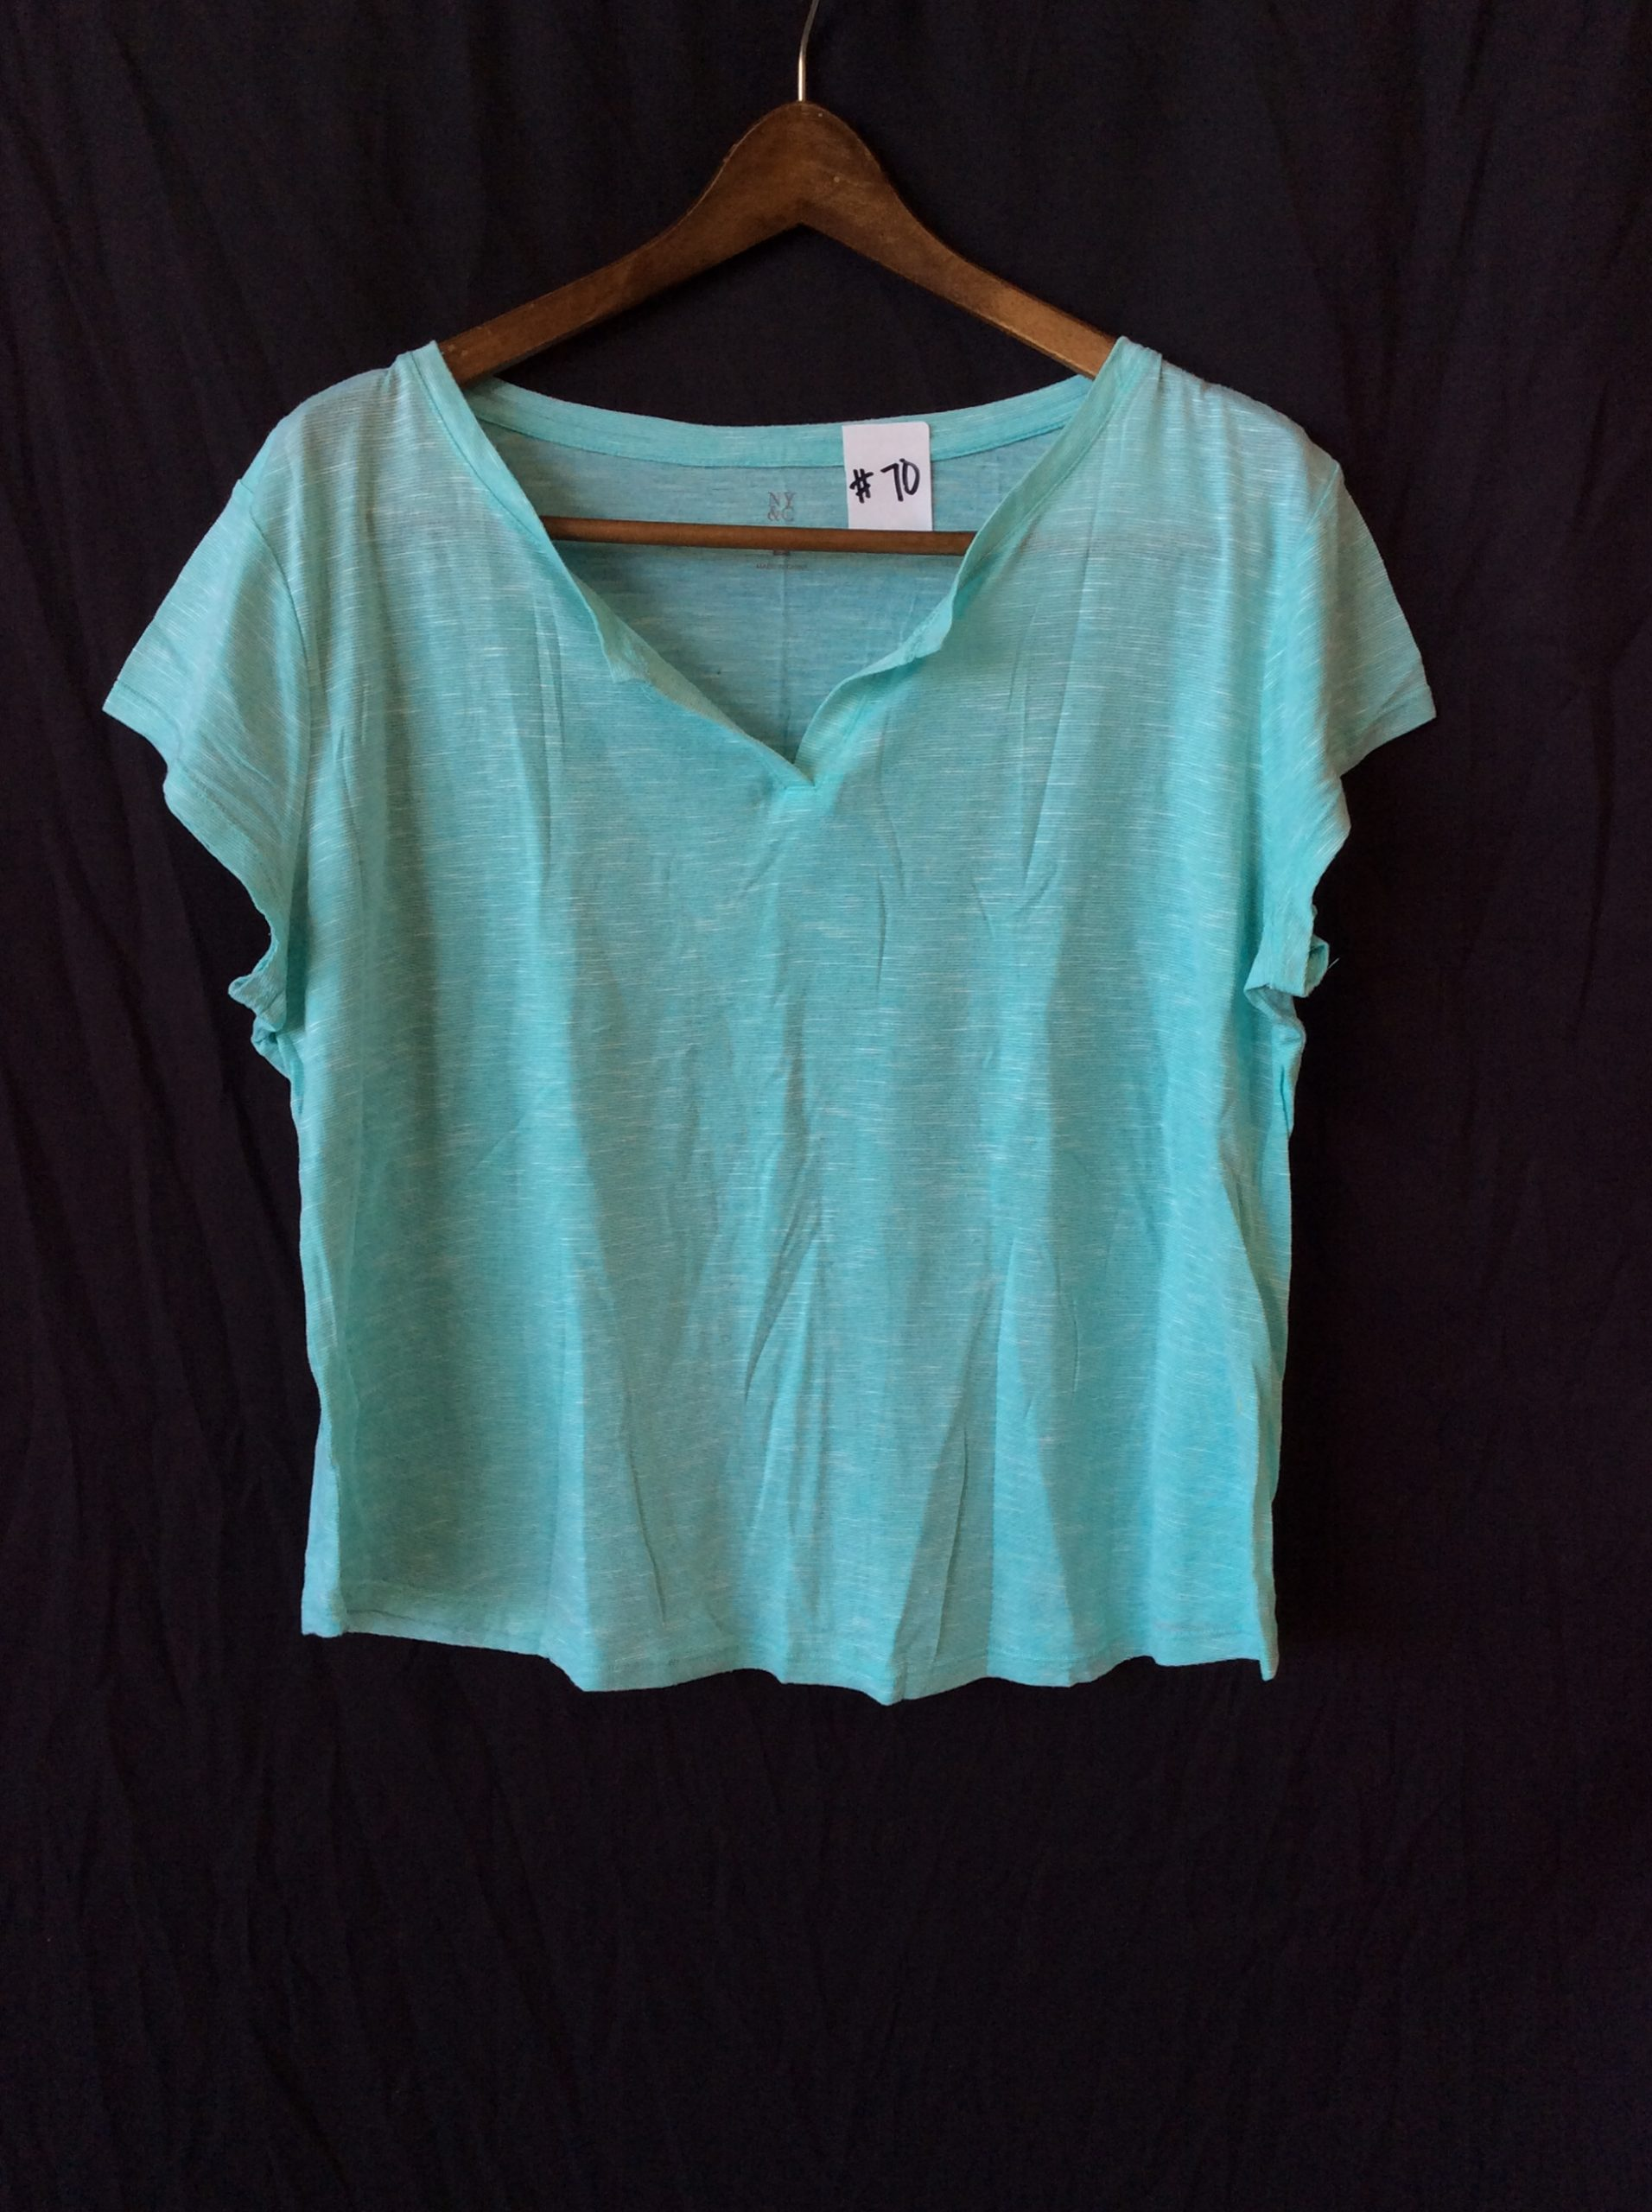 Women's v-neck turquoise top, size xl